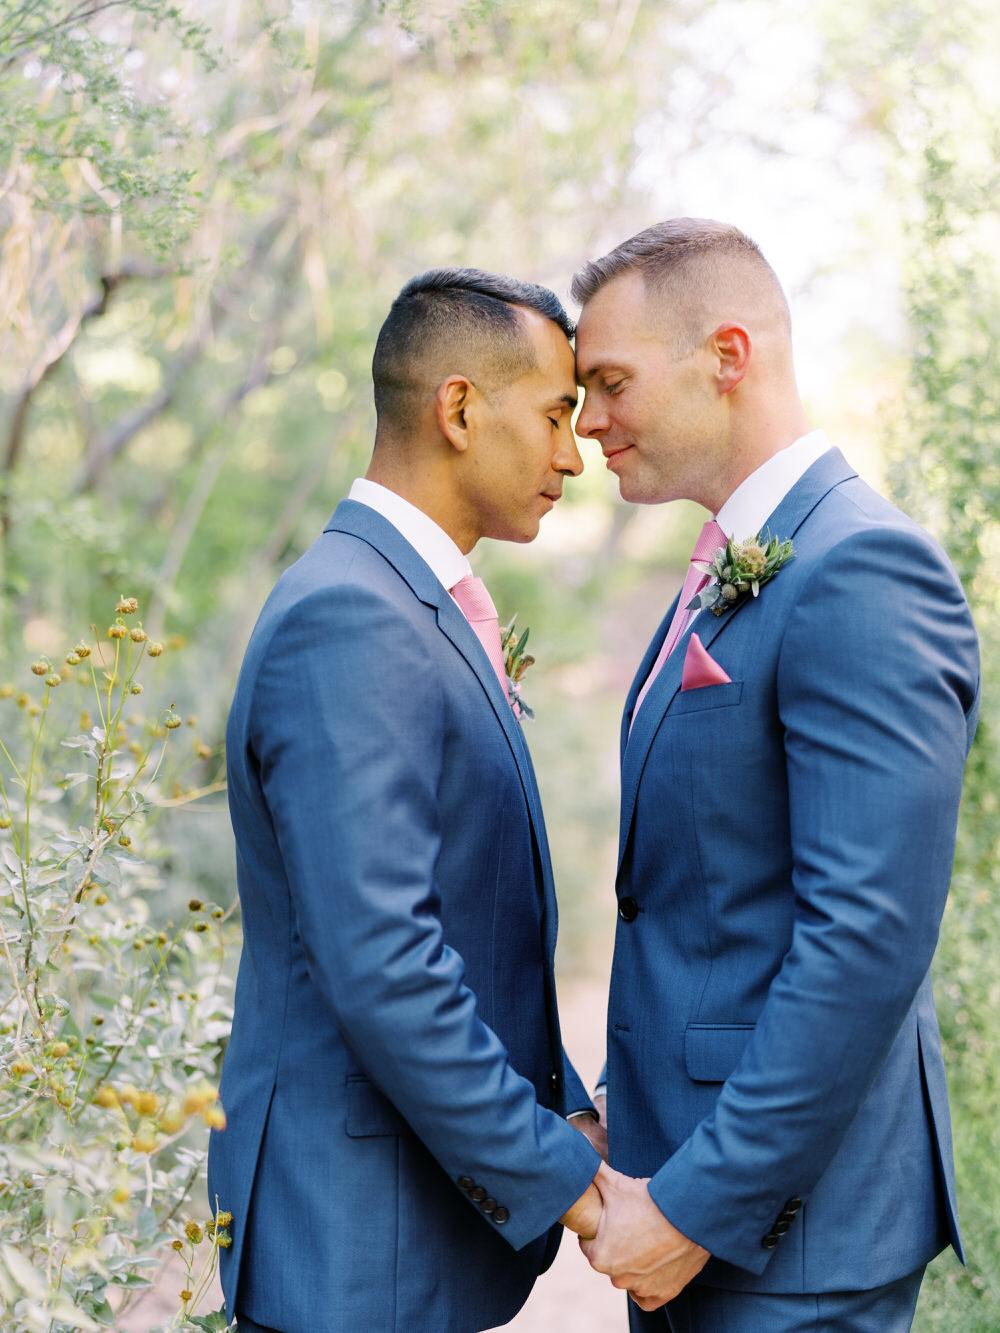 grooms touch foreheads for wedding photo